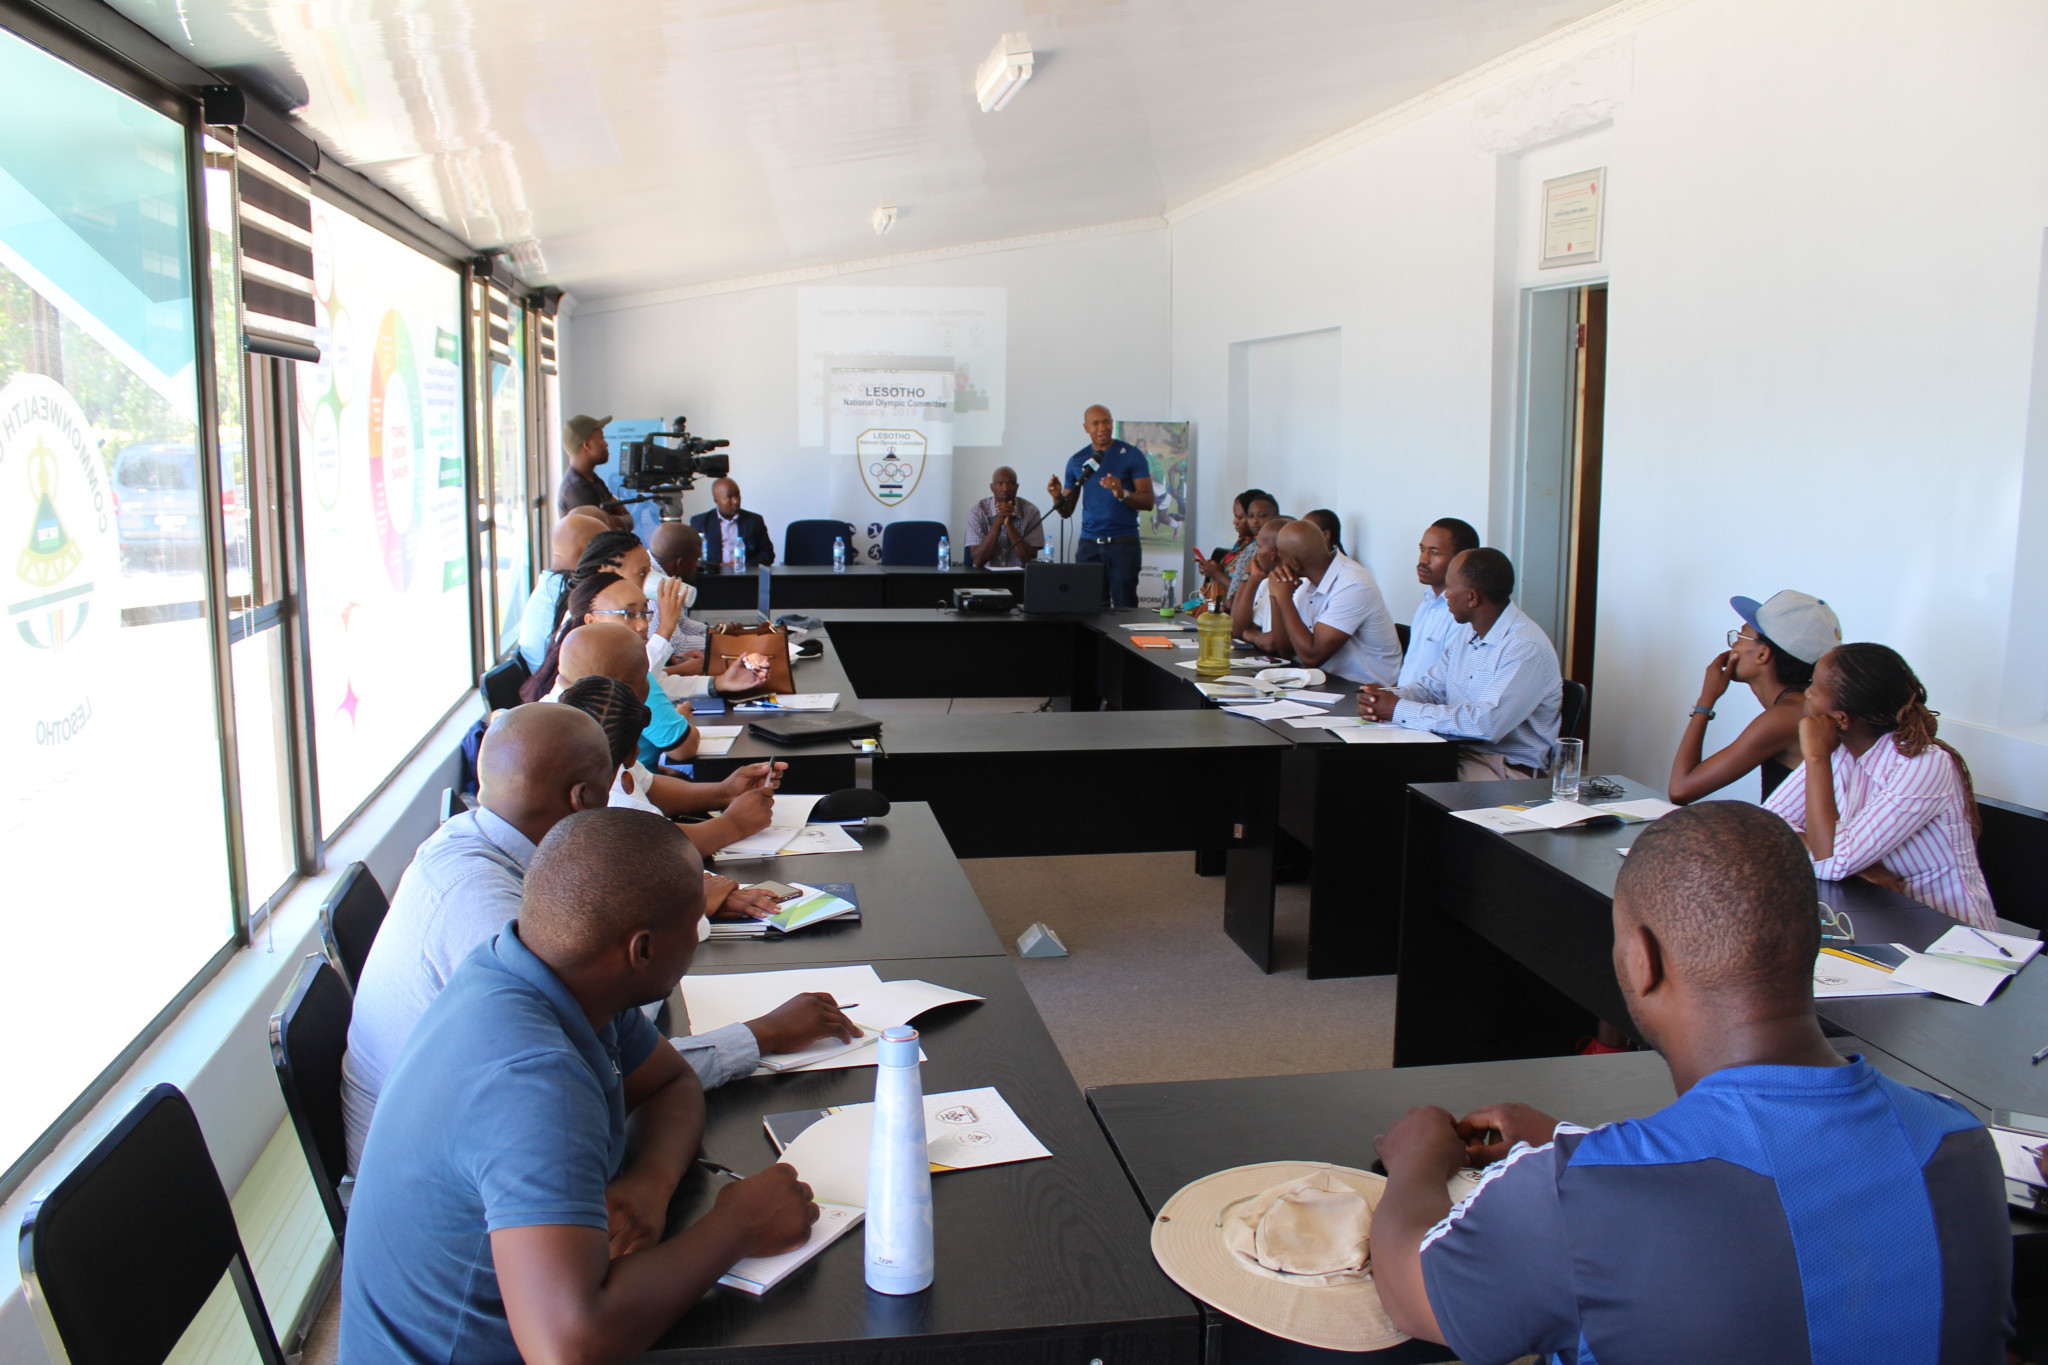 Twenty participants will take part in the course which teaches sport administrators how to bring about positive change in sport organisations ©Lesotho National Olympic Committee